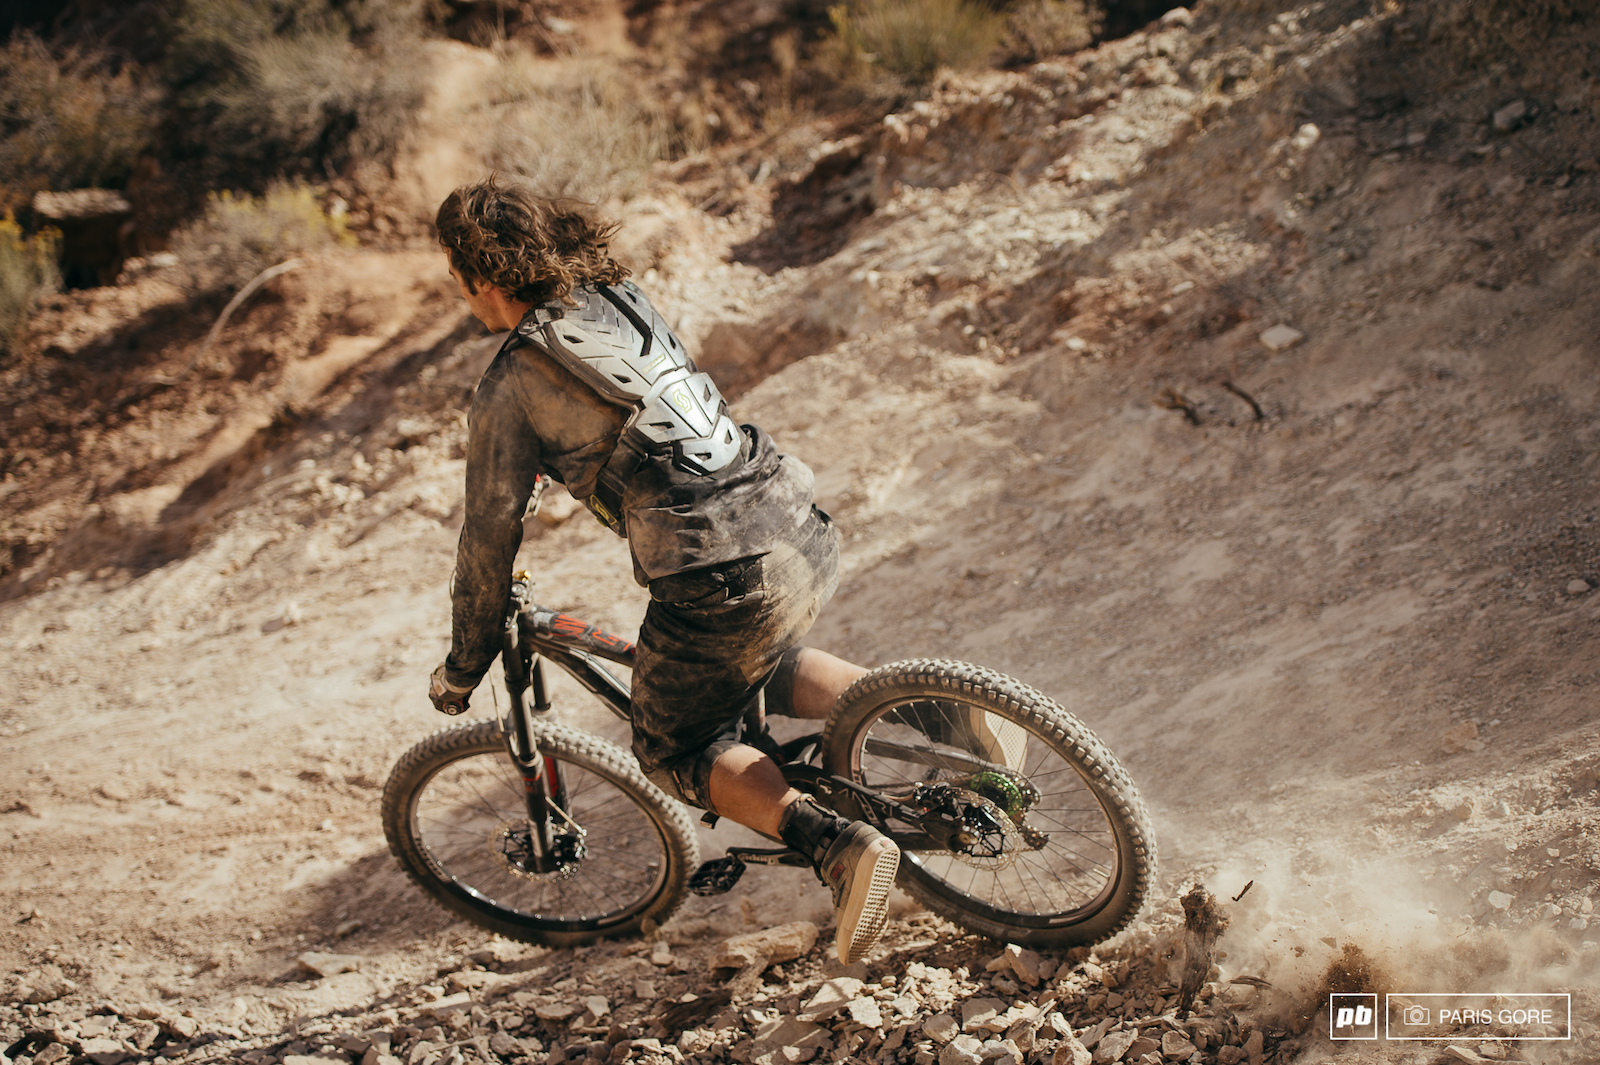 Niko Vink would hardly even take medical help after summersaulting down rocks for 50 feet. Riding away with a swollen and most likely broken ankle.